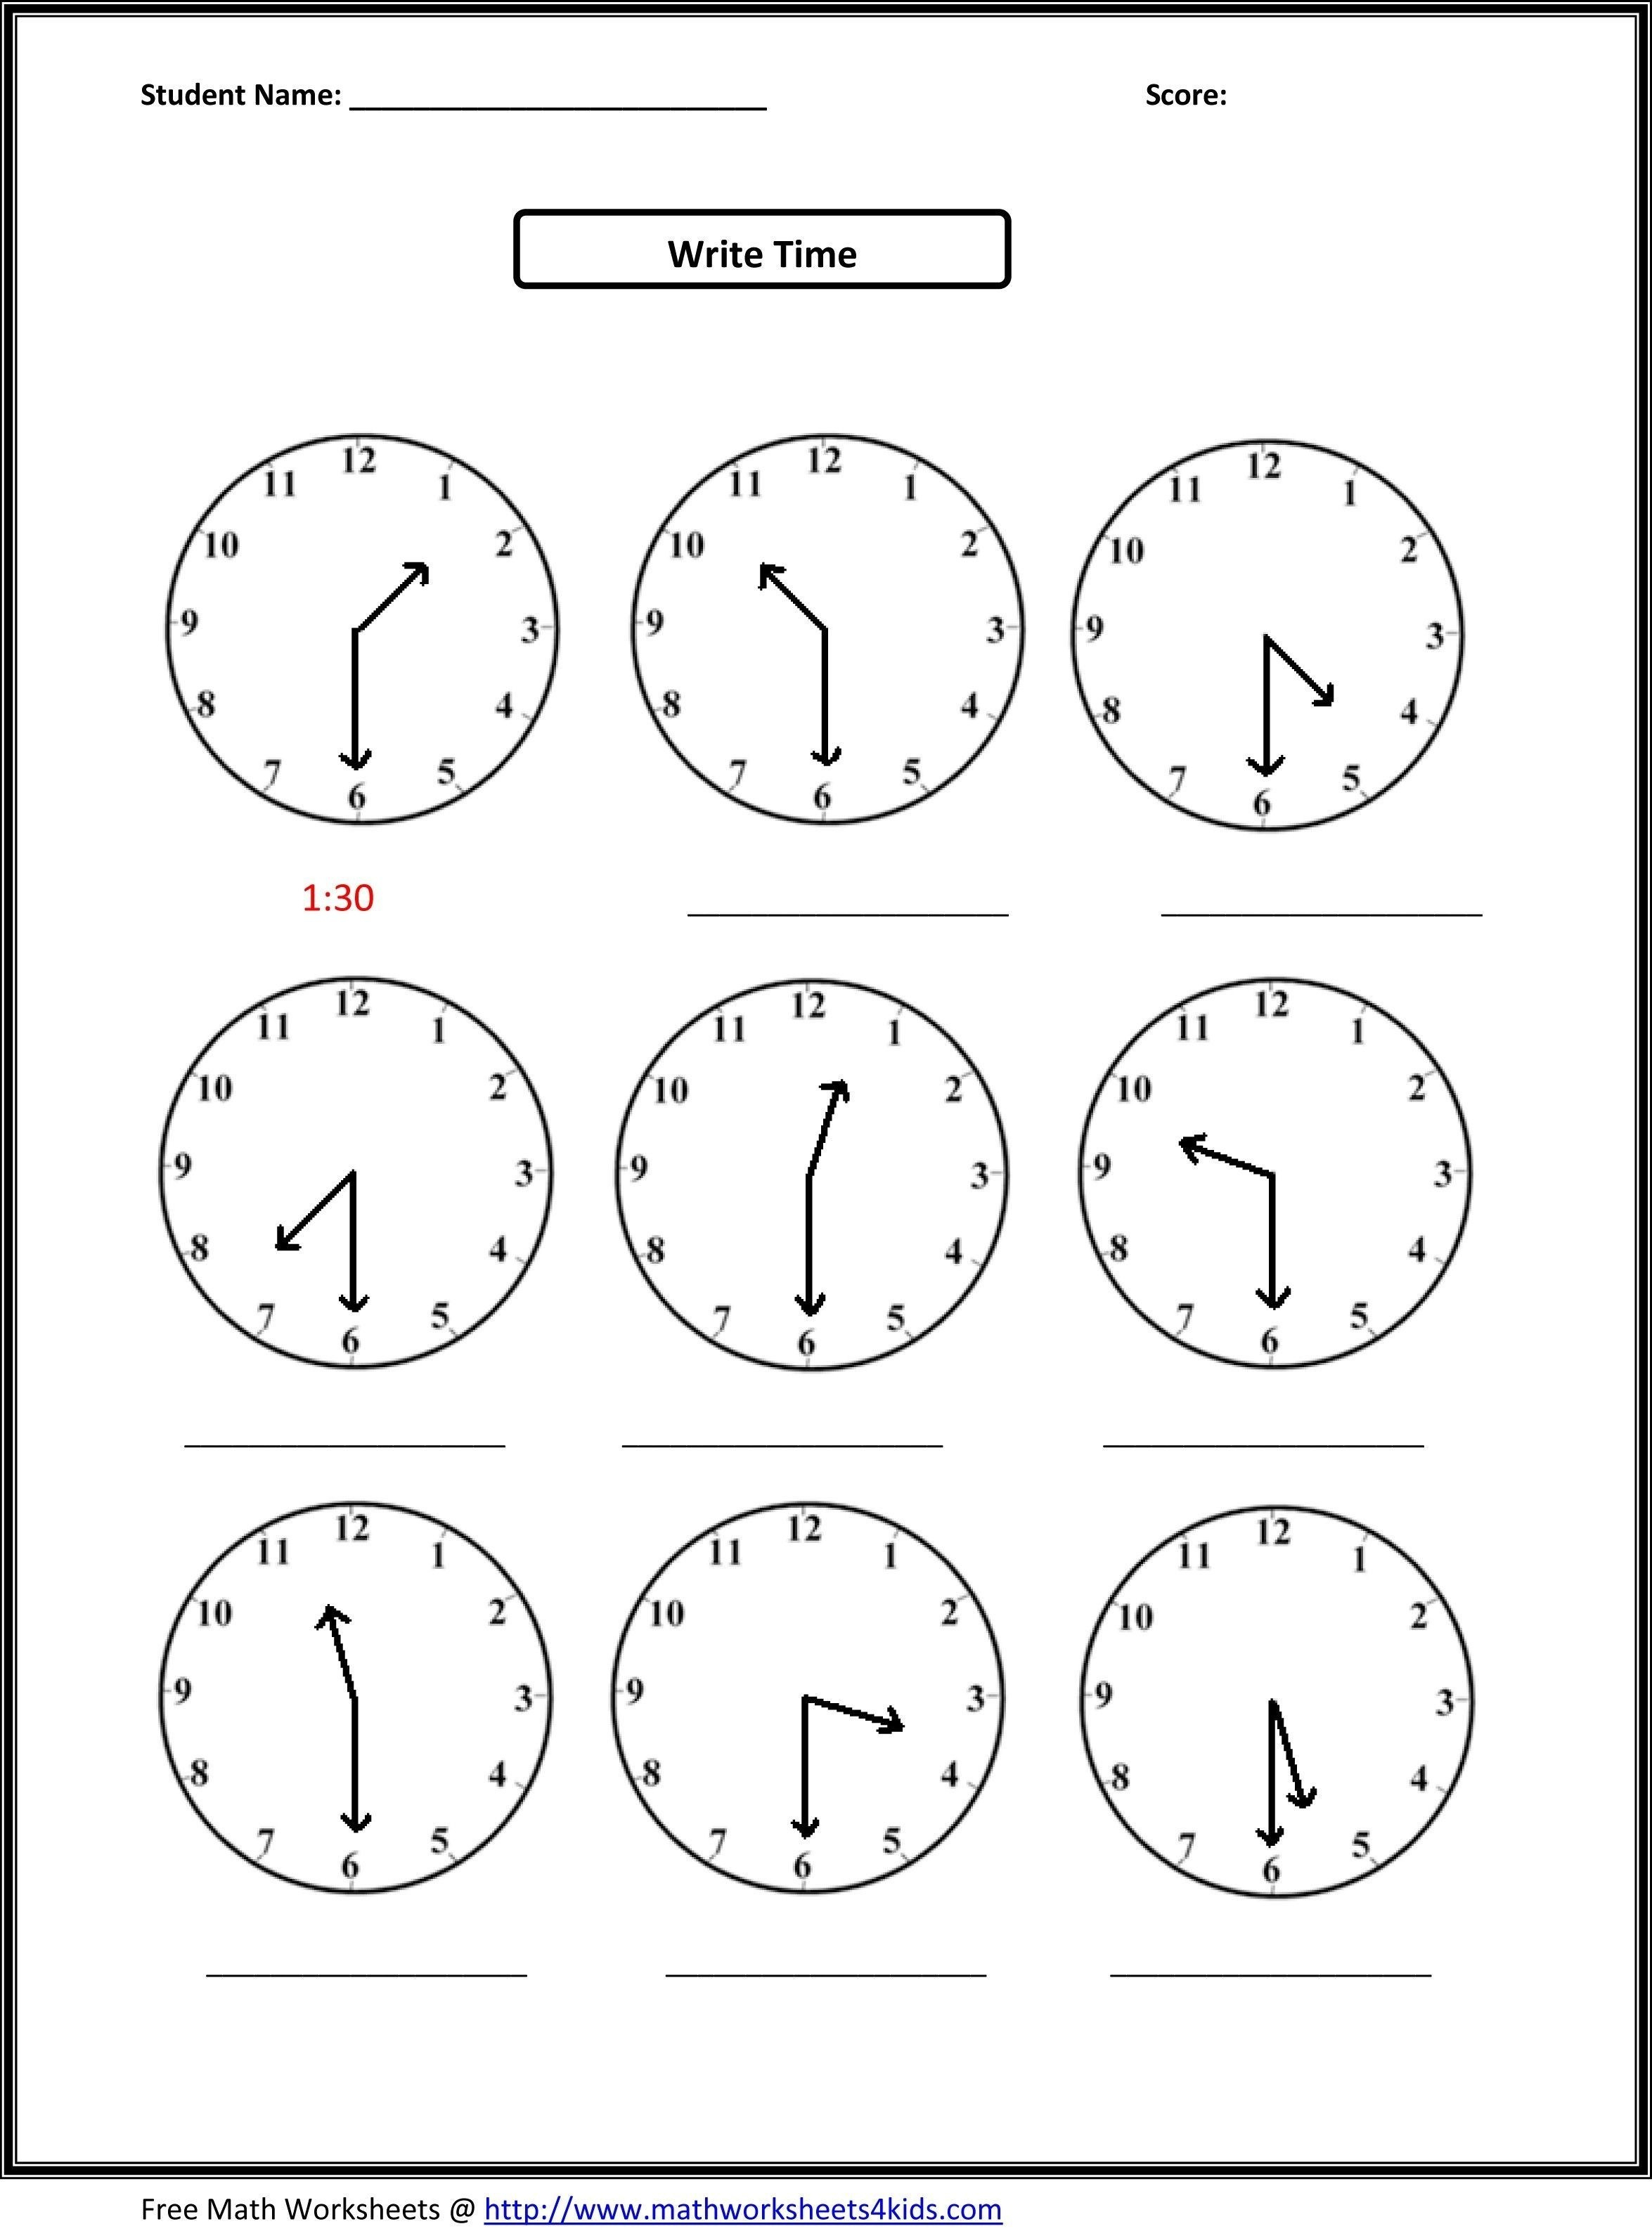 √ Telling Time Printable Worksheets First Grade Inspirationa - Free | Free Printable Telling Time Worksheets For 1St Grade